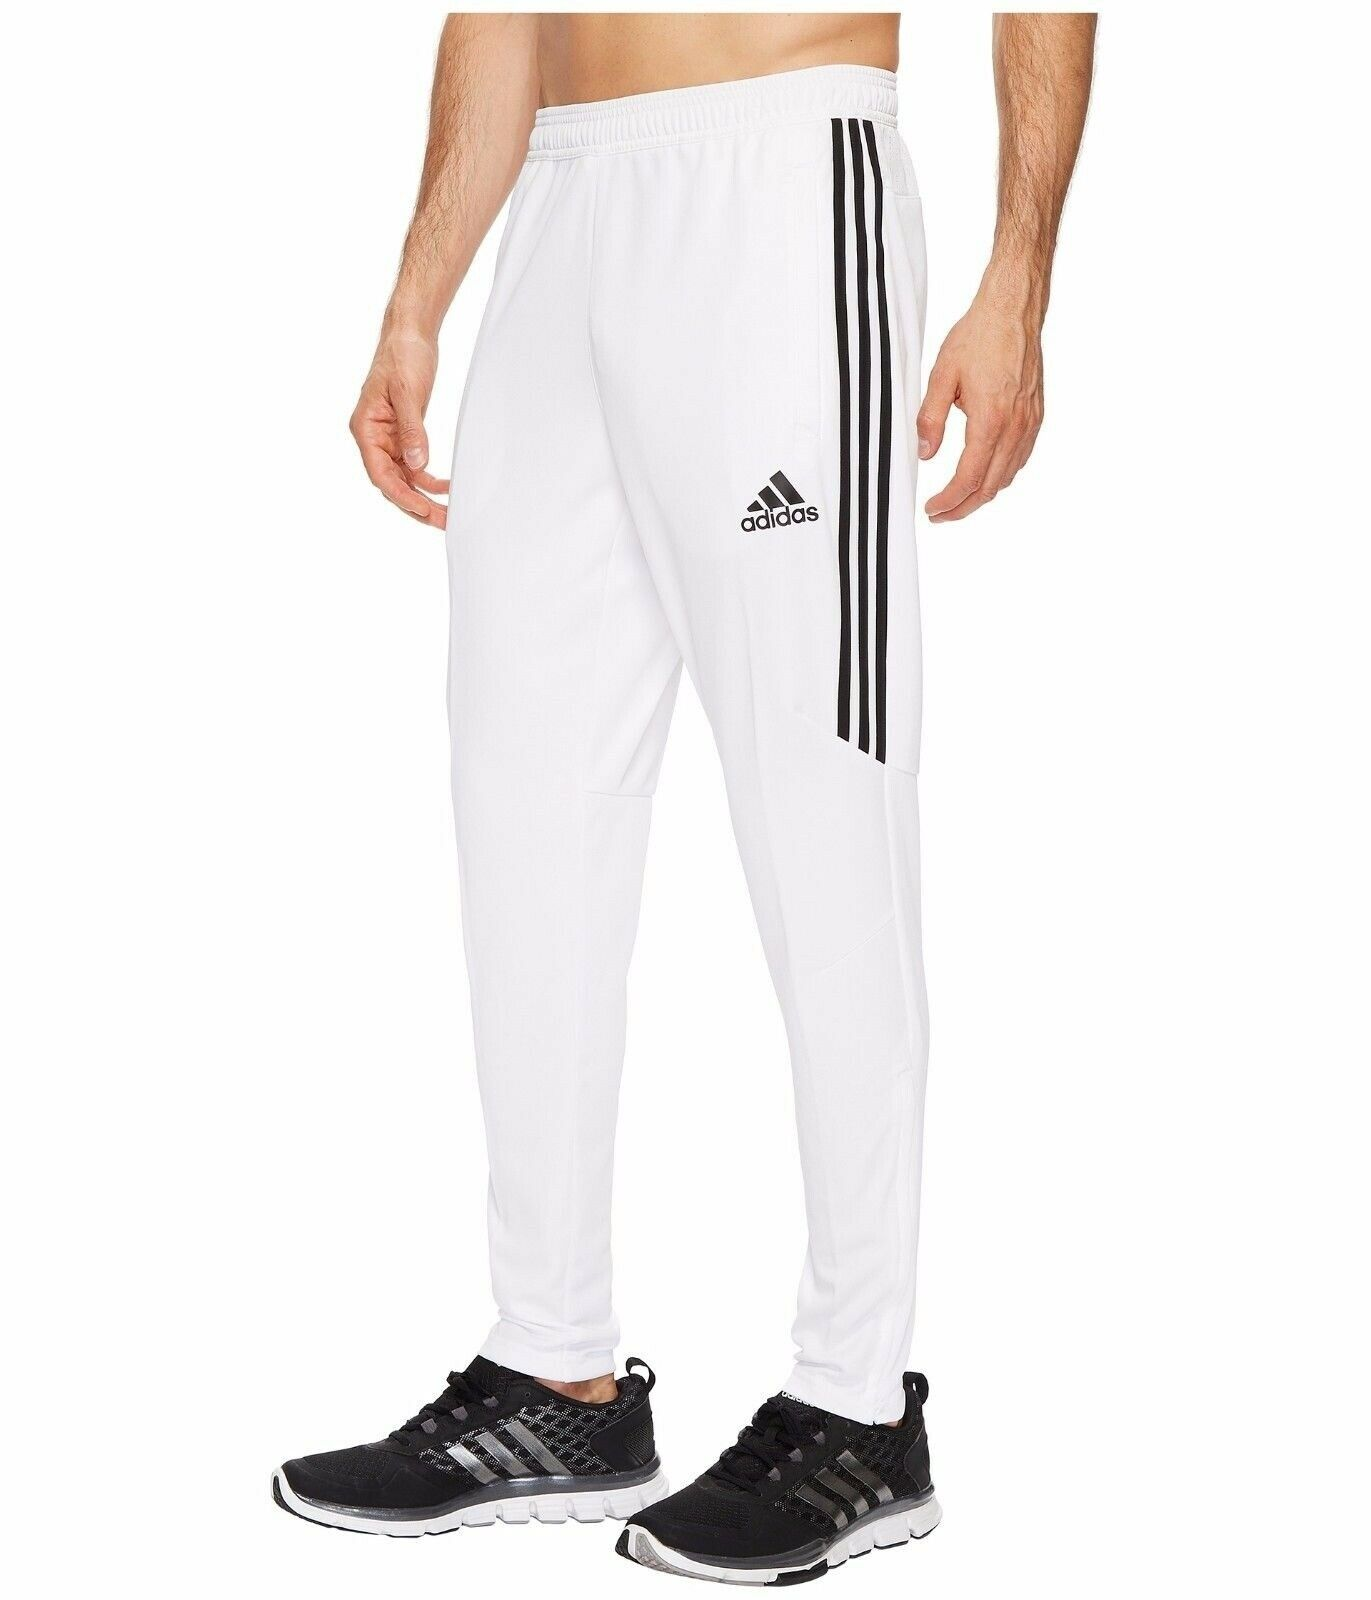 [CF3606] Mens Adidas Tiro 17 Training Pants WhiteBlack Tapered Slim Fit Tiro17